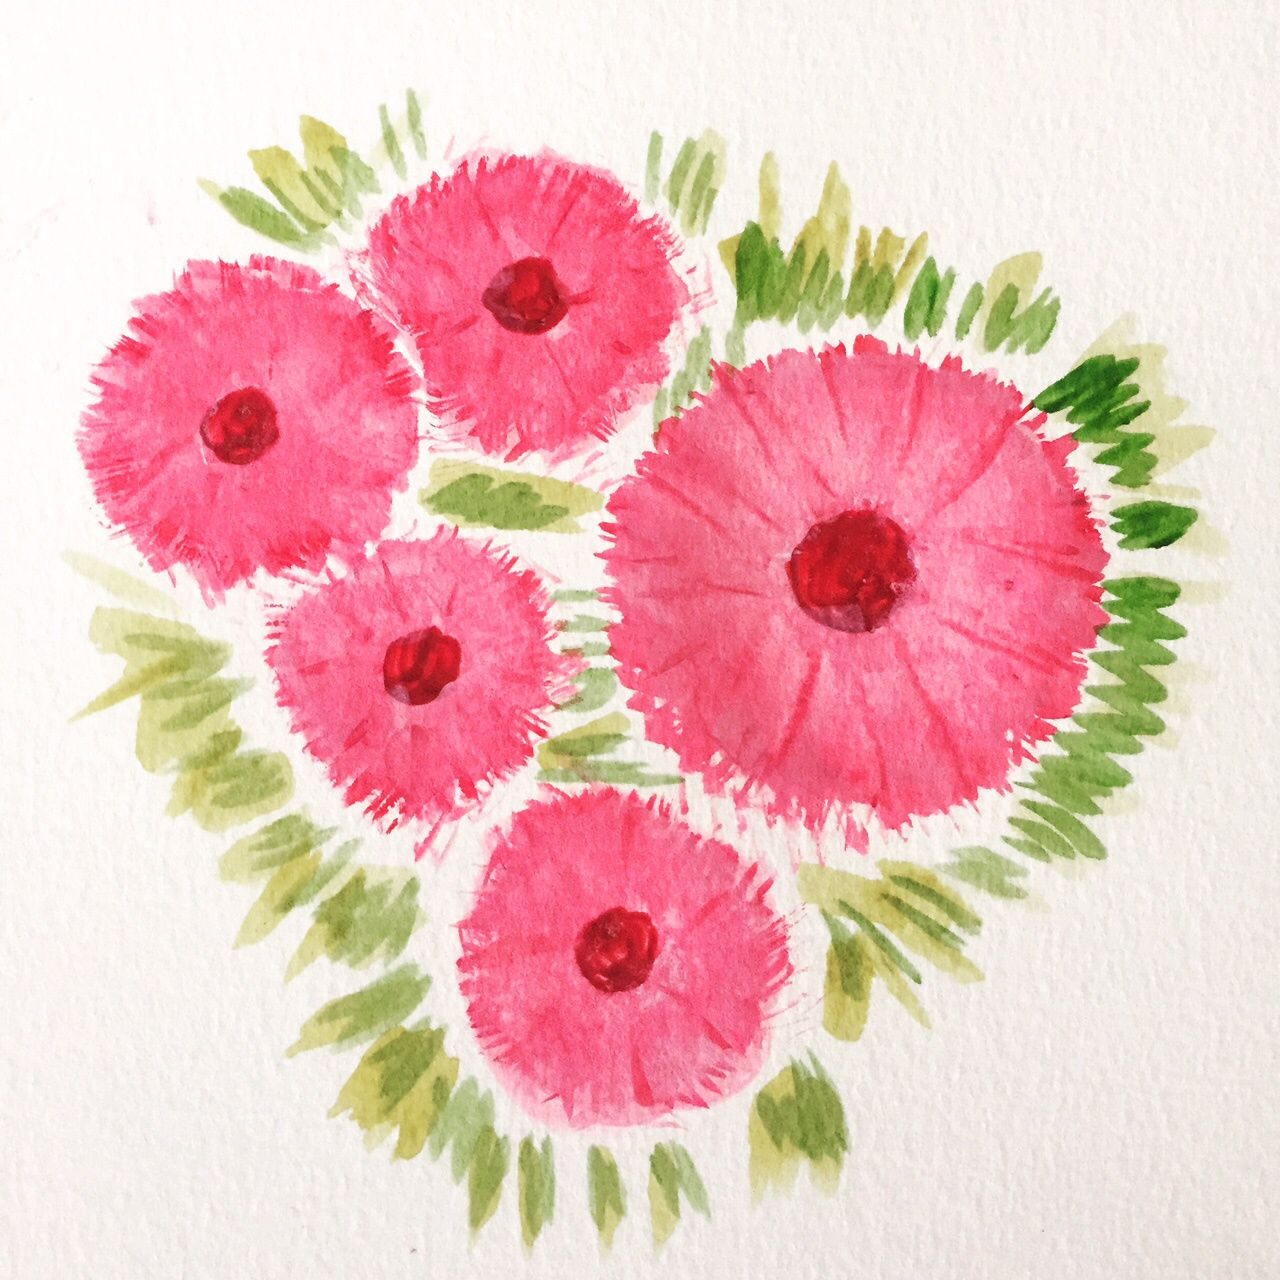 Day 69 of the 100 Day Project #water #color #colour #flowers